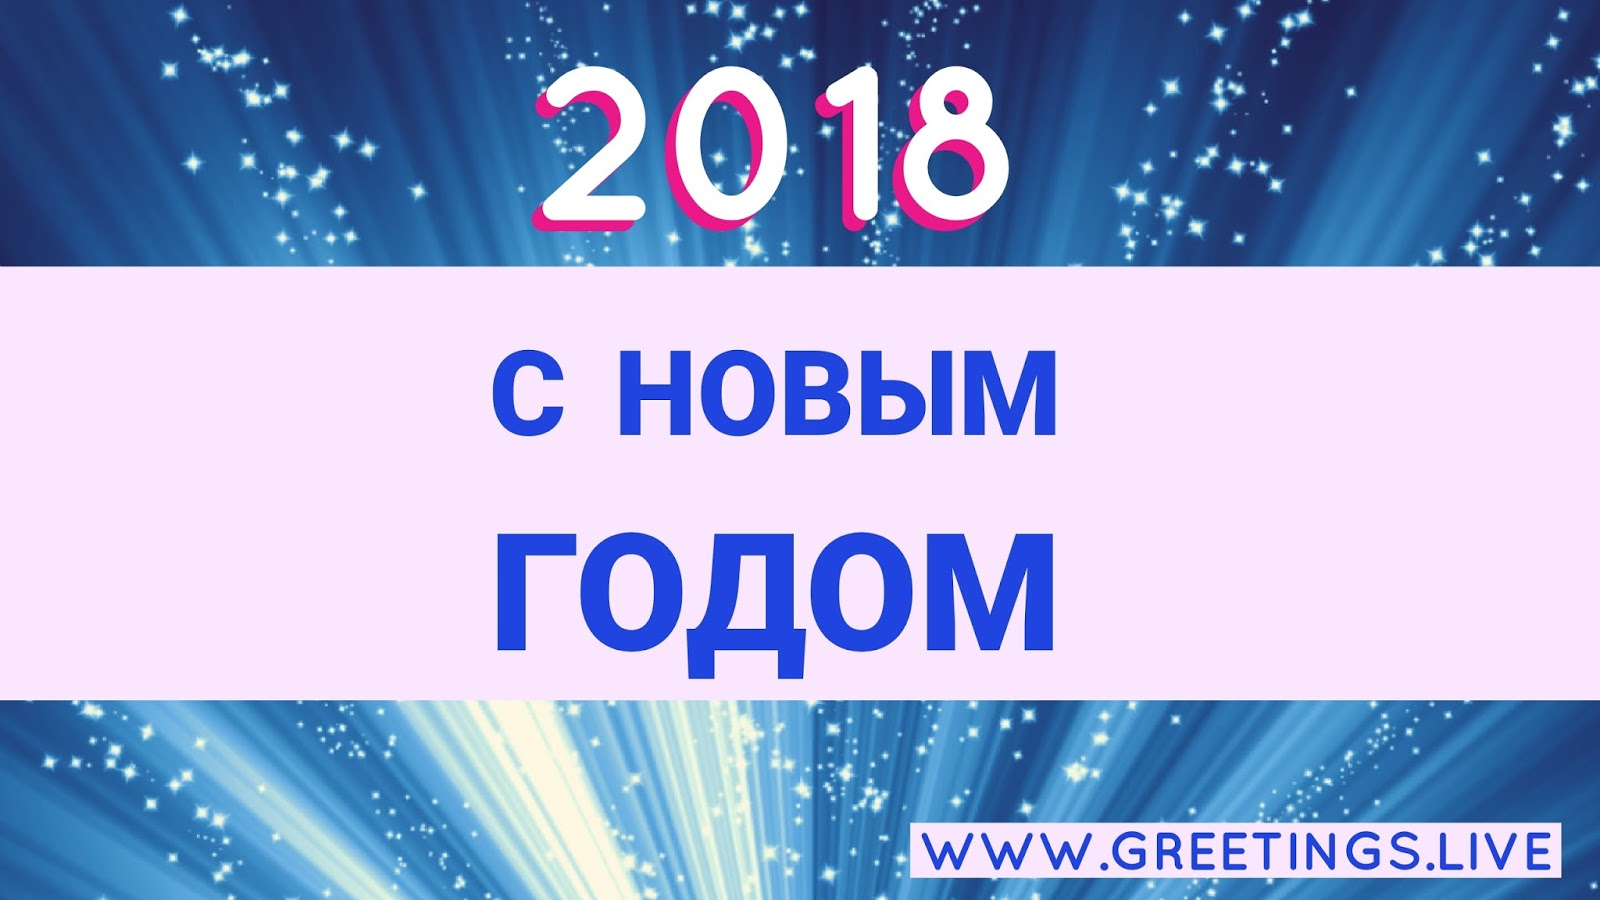 Greetingsve hd images love smile birthday wishes free download happy new year in all languages in the world kristyandbryce Gallery